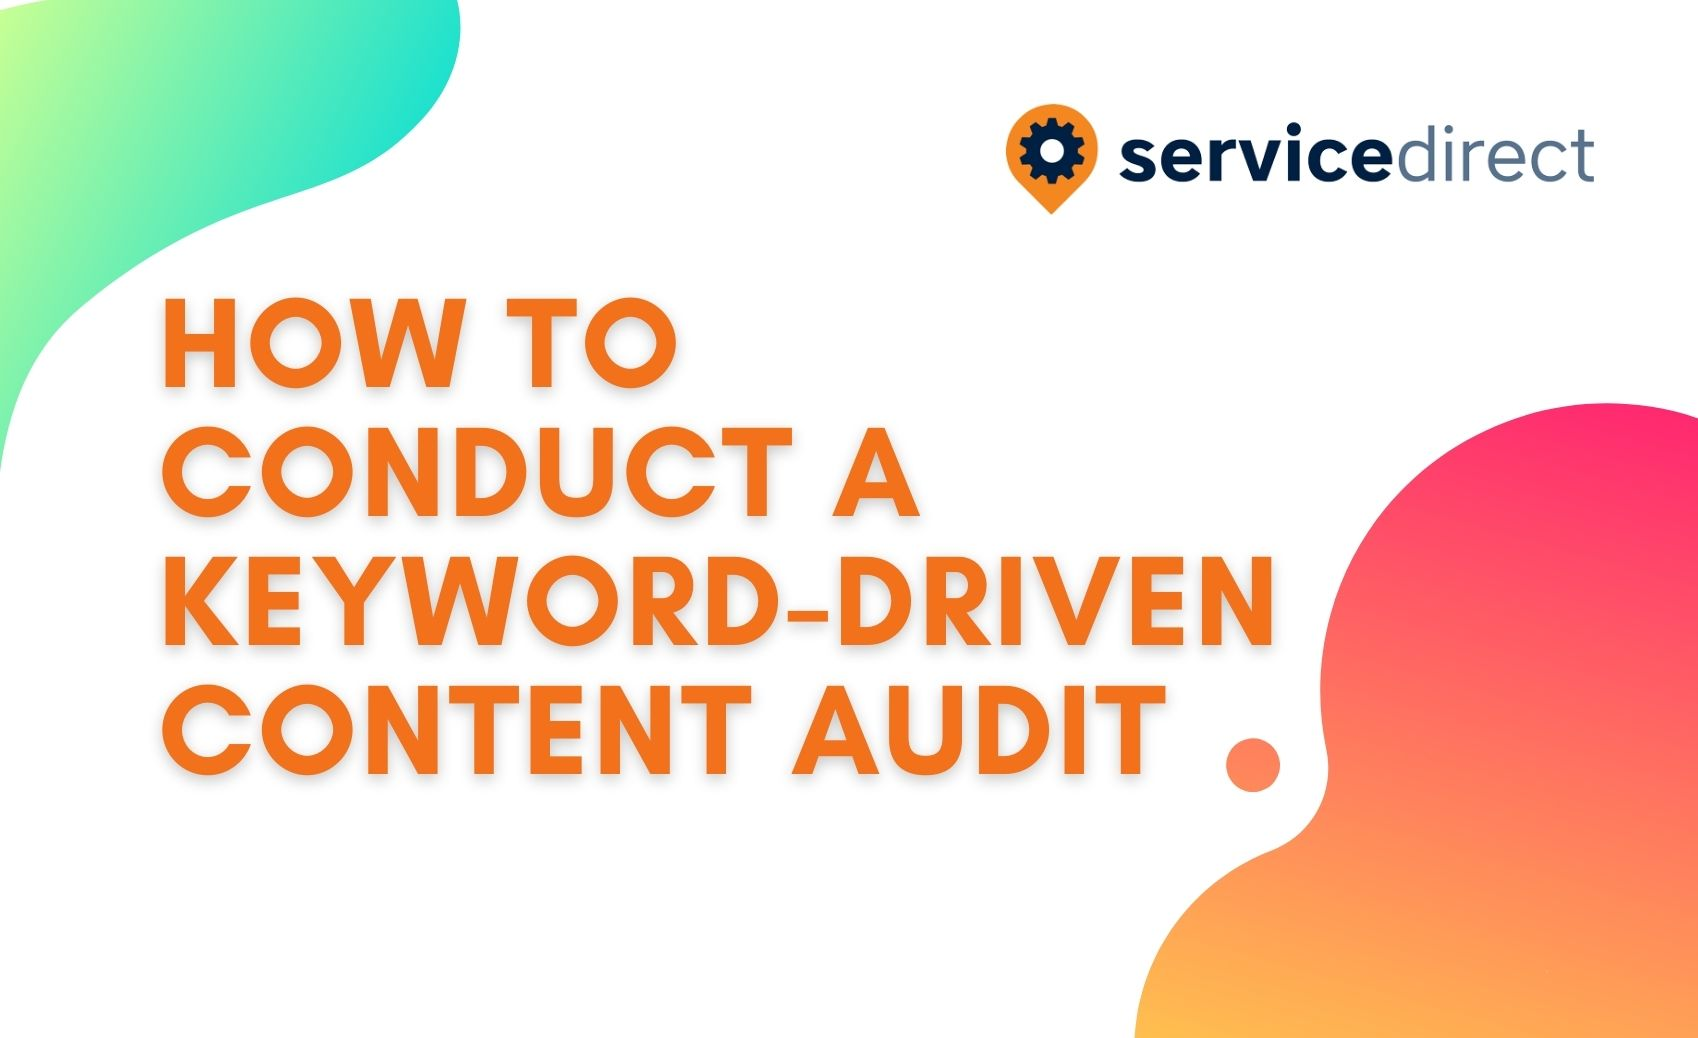 How To Conduct Keyword-Driven Content Audit Blog Header